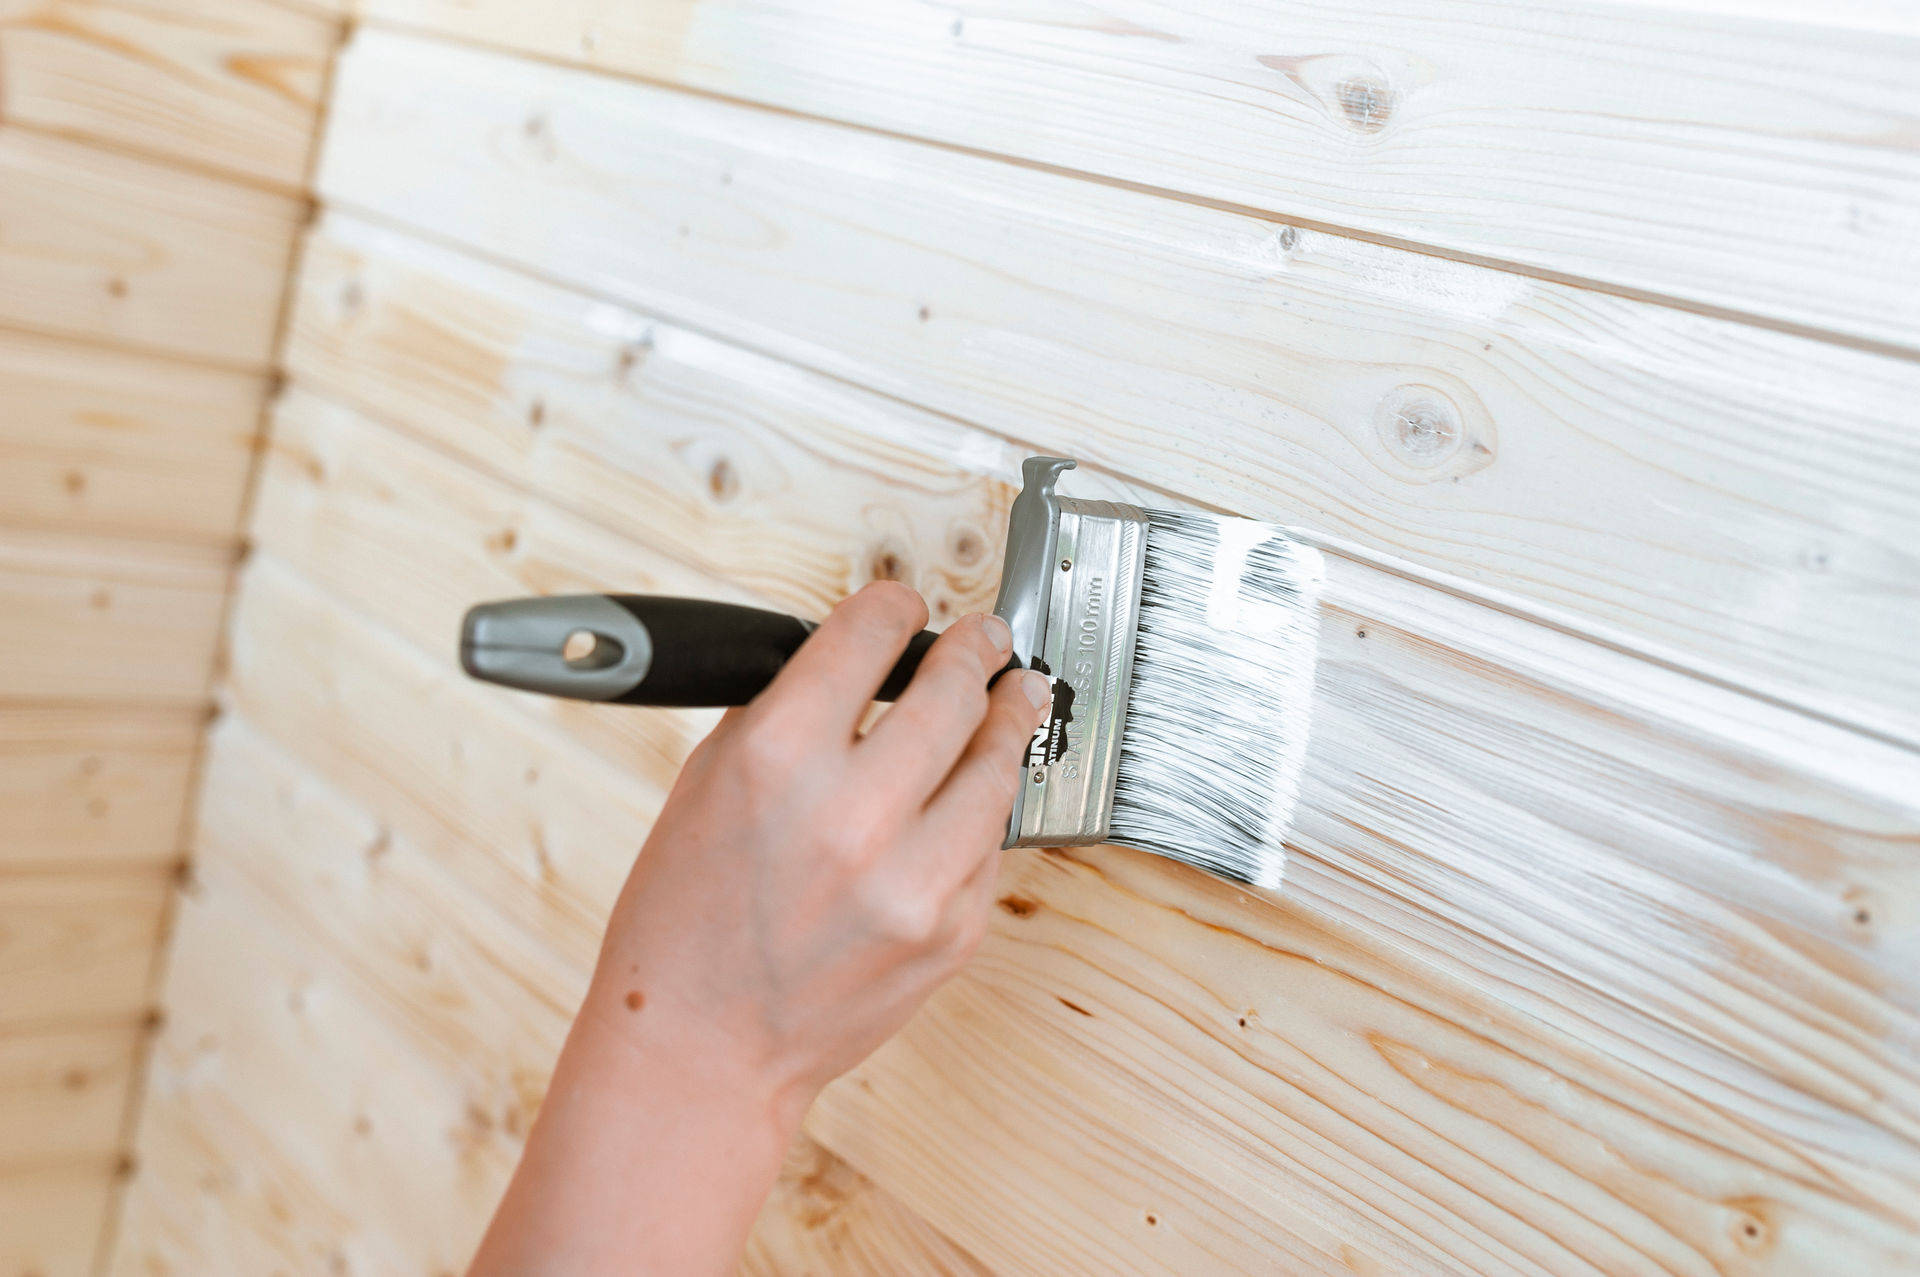 Wood Panel Wall - Check Best Ideas on How to Paint Wood Paneling